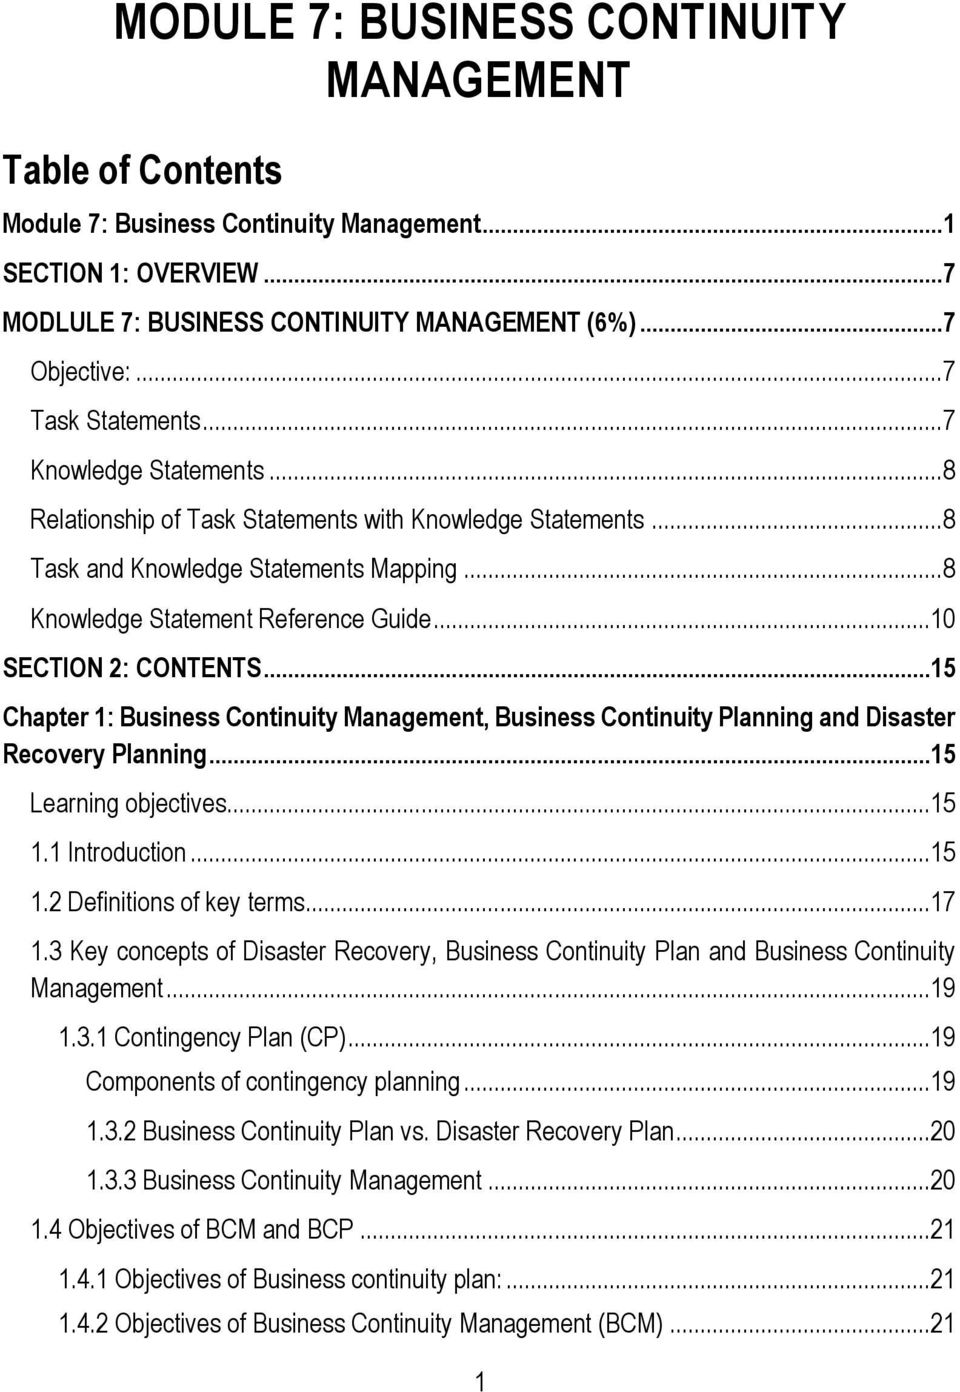 ..10 SECTION 2: CONTENTS...15 Chapter 1: Business Continuity Management, Business Continuity Planning and Disaster Recovery Planning...15 Learning objectives...15 1.1 Introduction...15 1.2 Definitions of key terms.